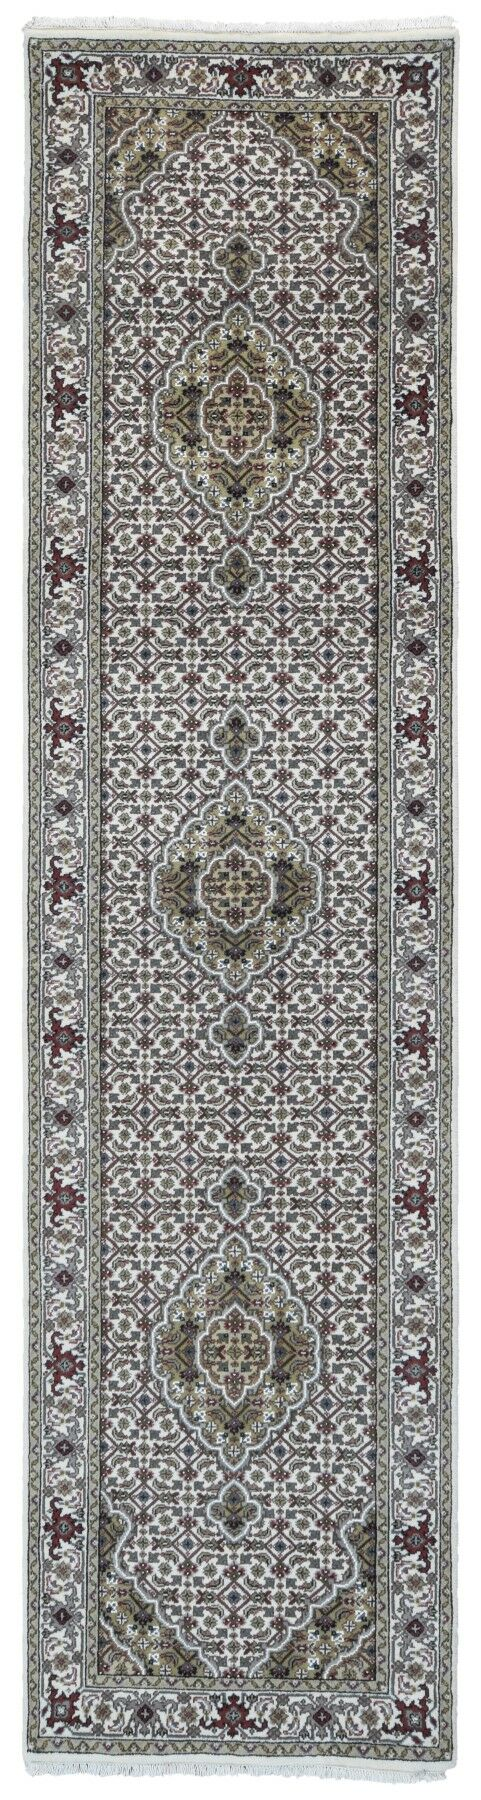 One-of-a-Kind Joanna Oriental Hand-Knotted Beige/Green Area Rug